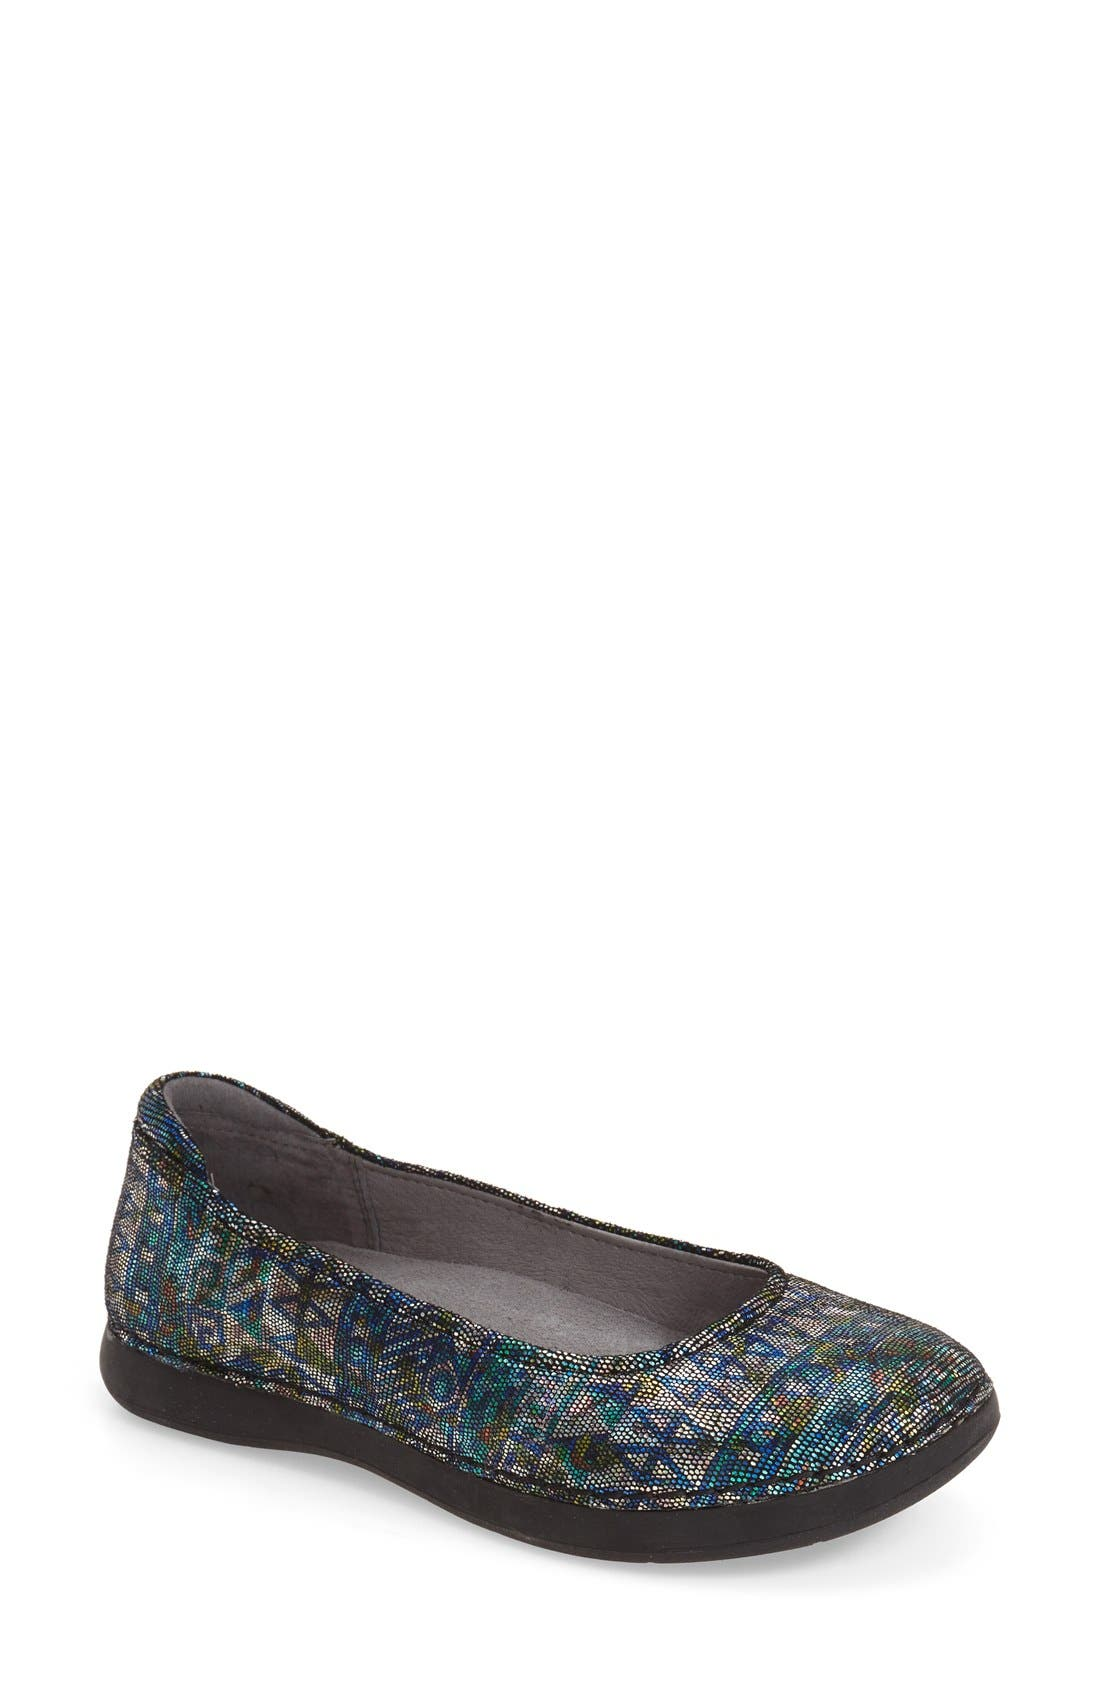 Petal Ballet Flat,                             Main thumbnail 7, color,